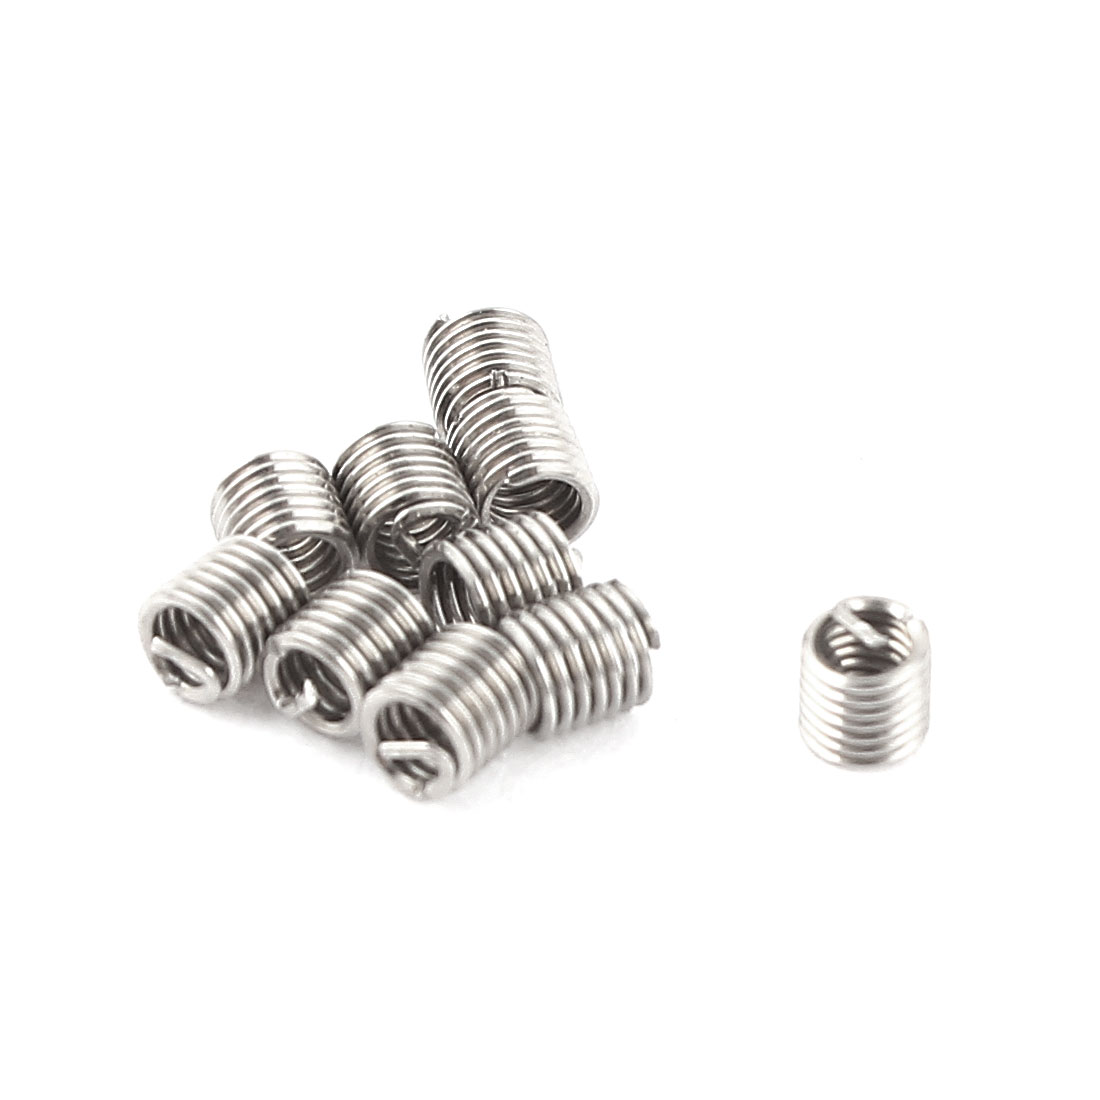 10Pcs 304 Stainless Steel Helicoil Wire Thread Repair Inserts M2 x 0.4mm x 2D